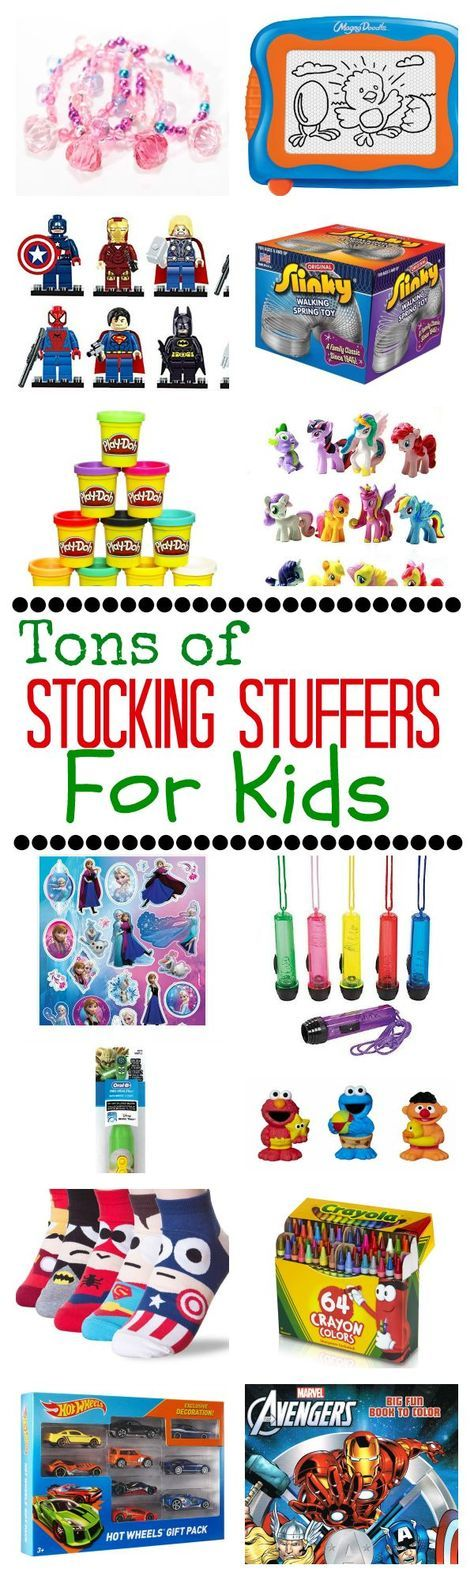 Diy crafts for kids christmas stocking stuffers 28 New ideas #stockingstuffersforkids